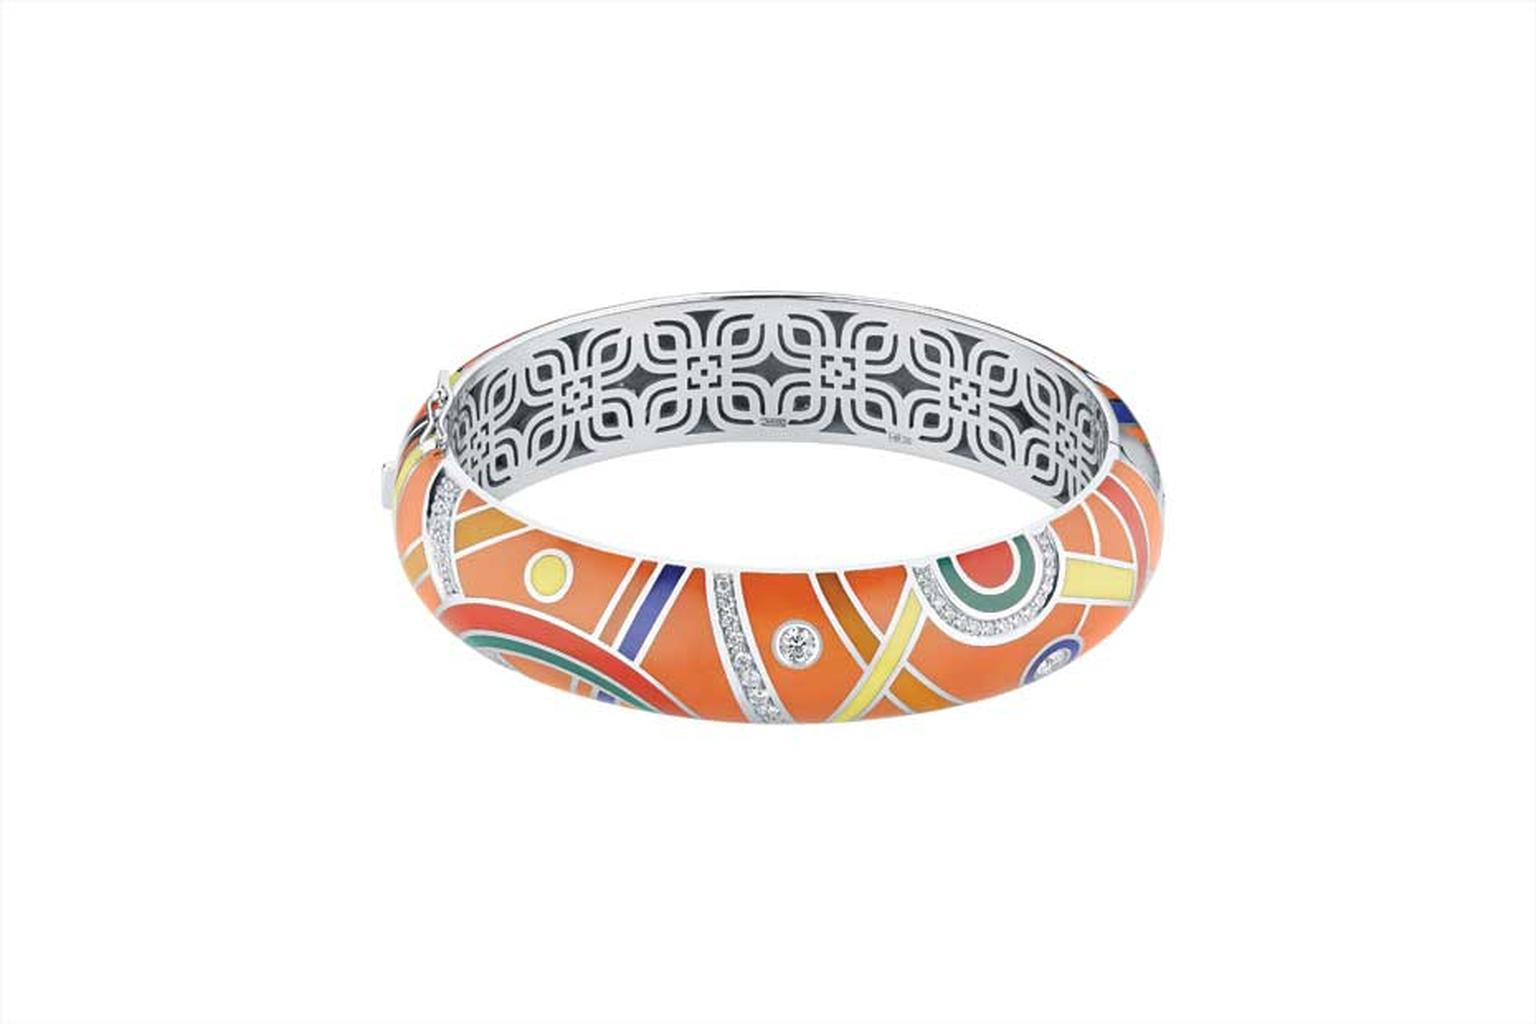 Alexander Arne bangle in white gold, with colourful enamel and diamonds.